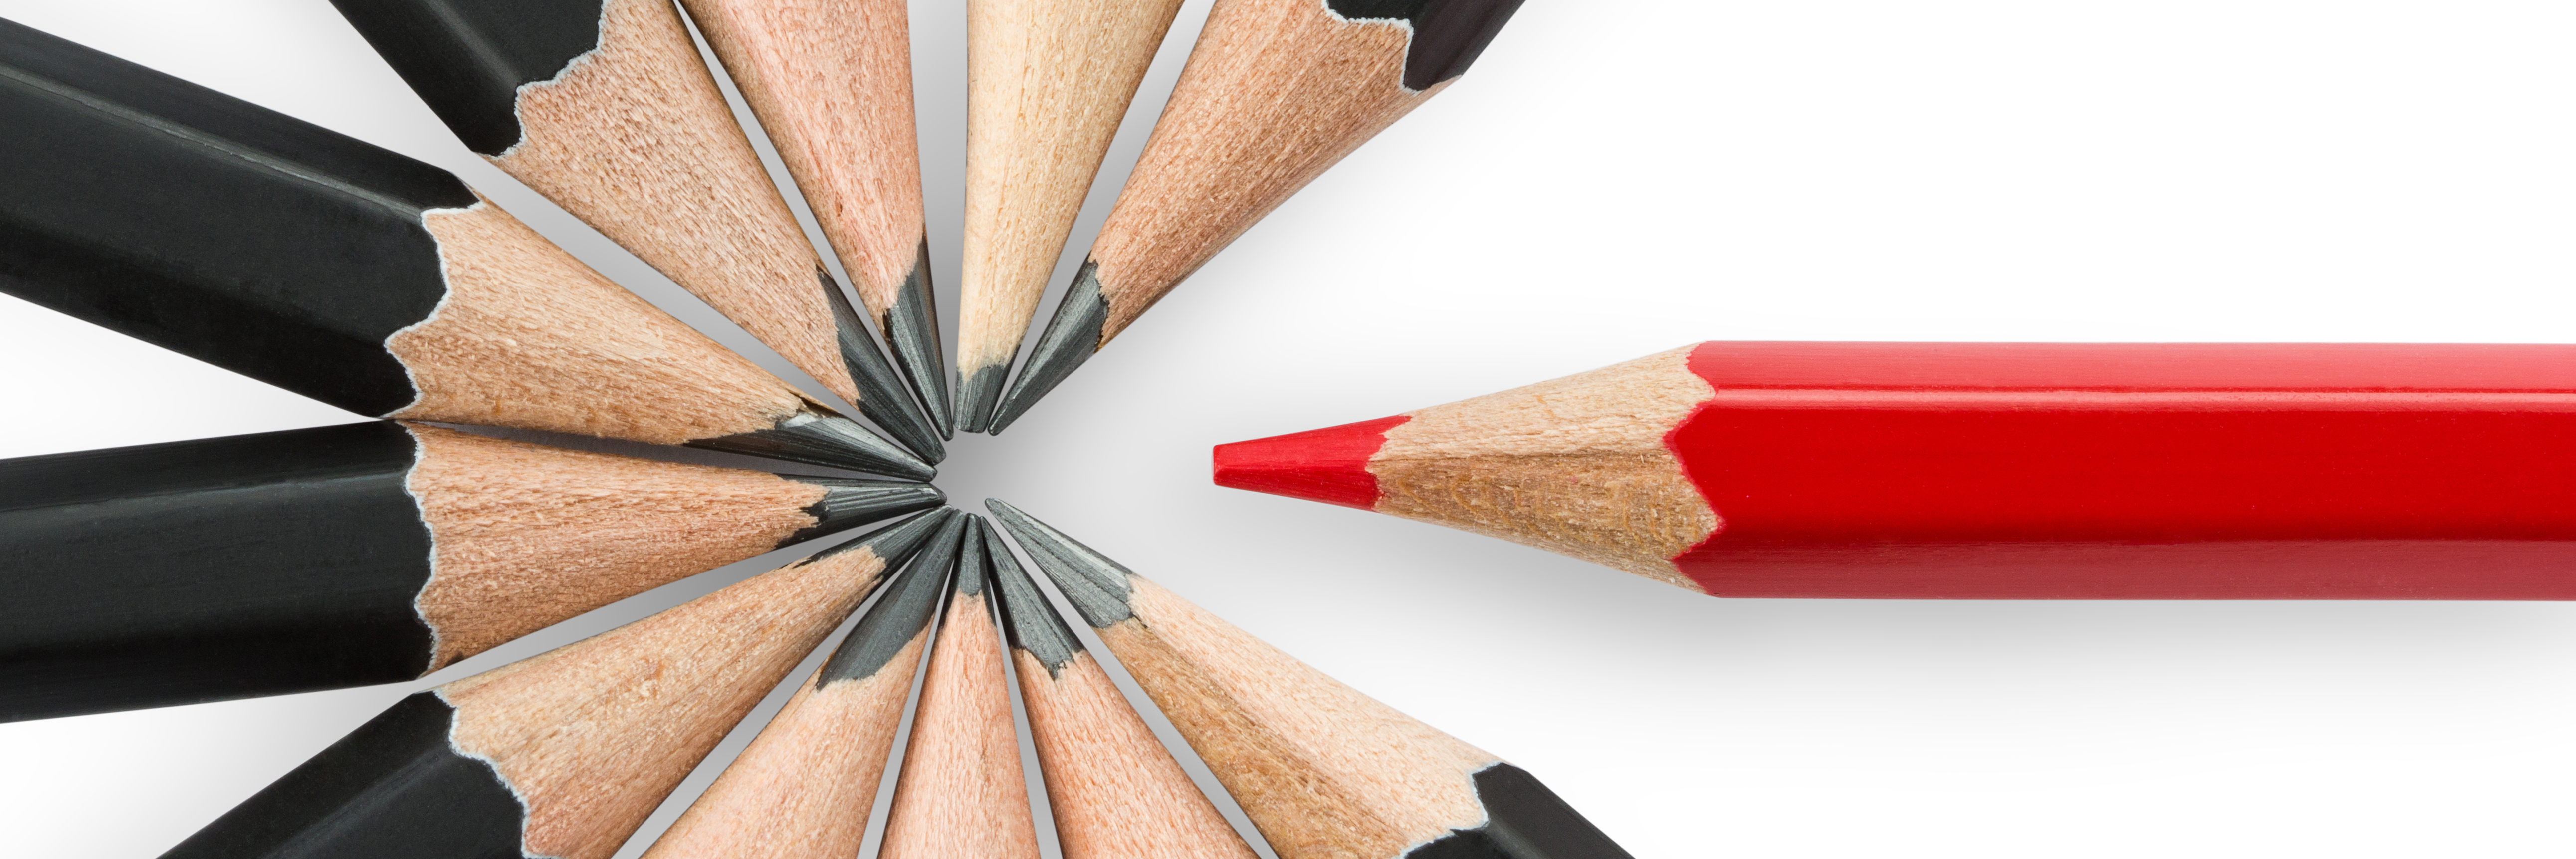 red trade show booth design pencil standing out amongst black pencils